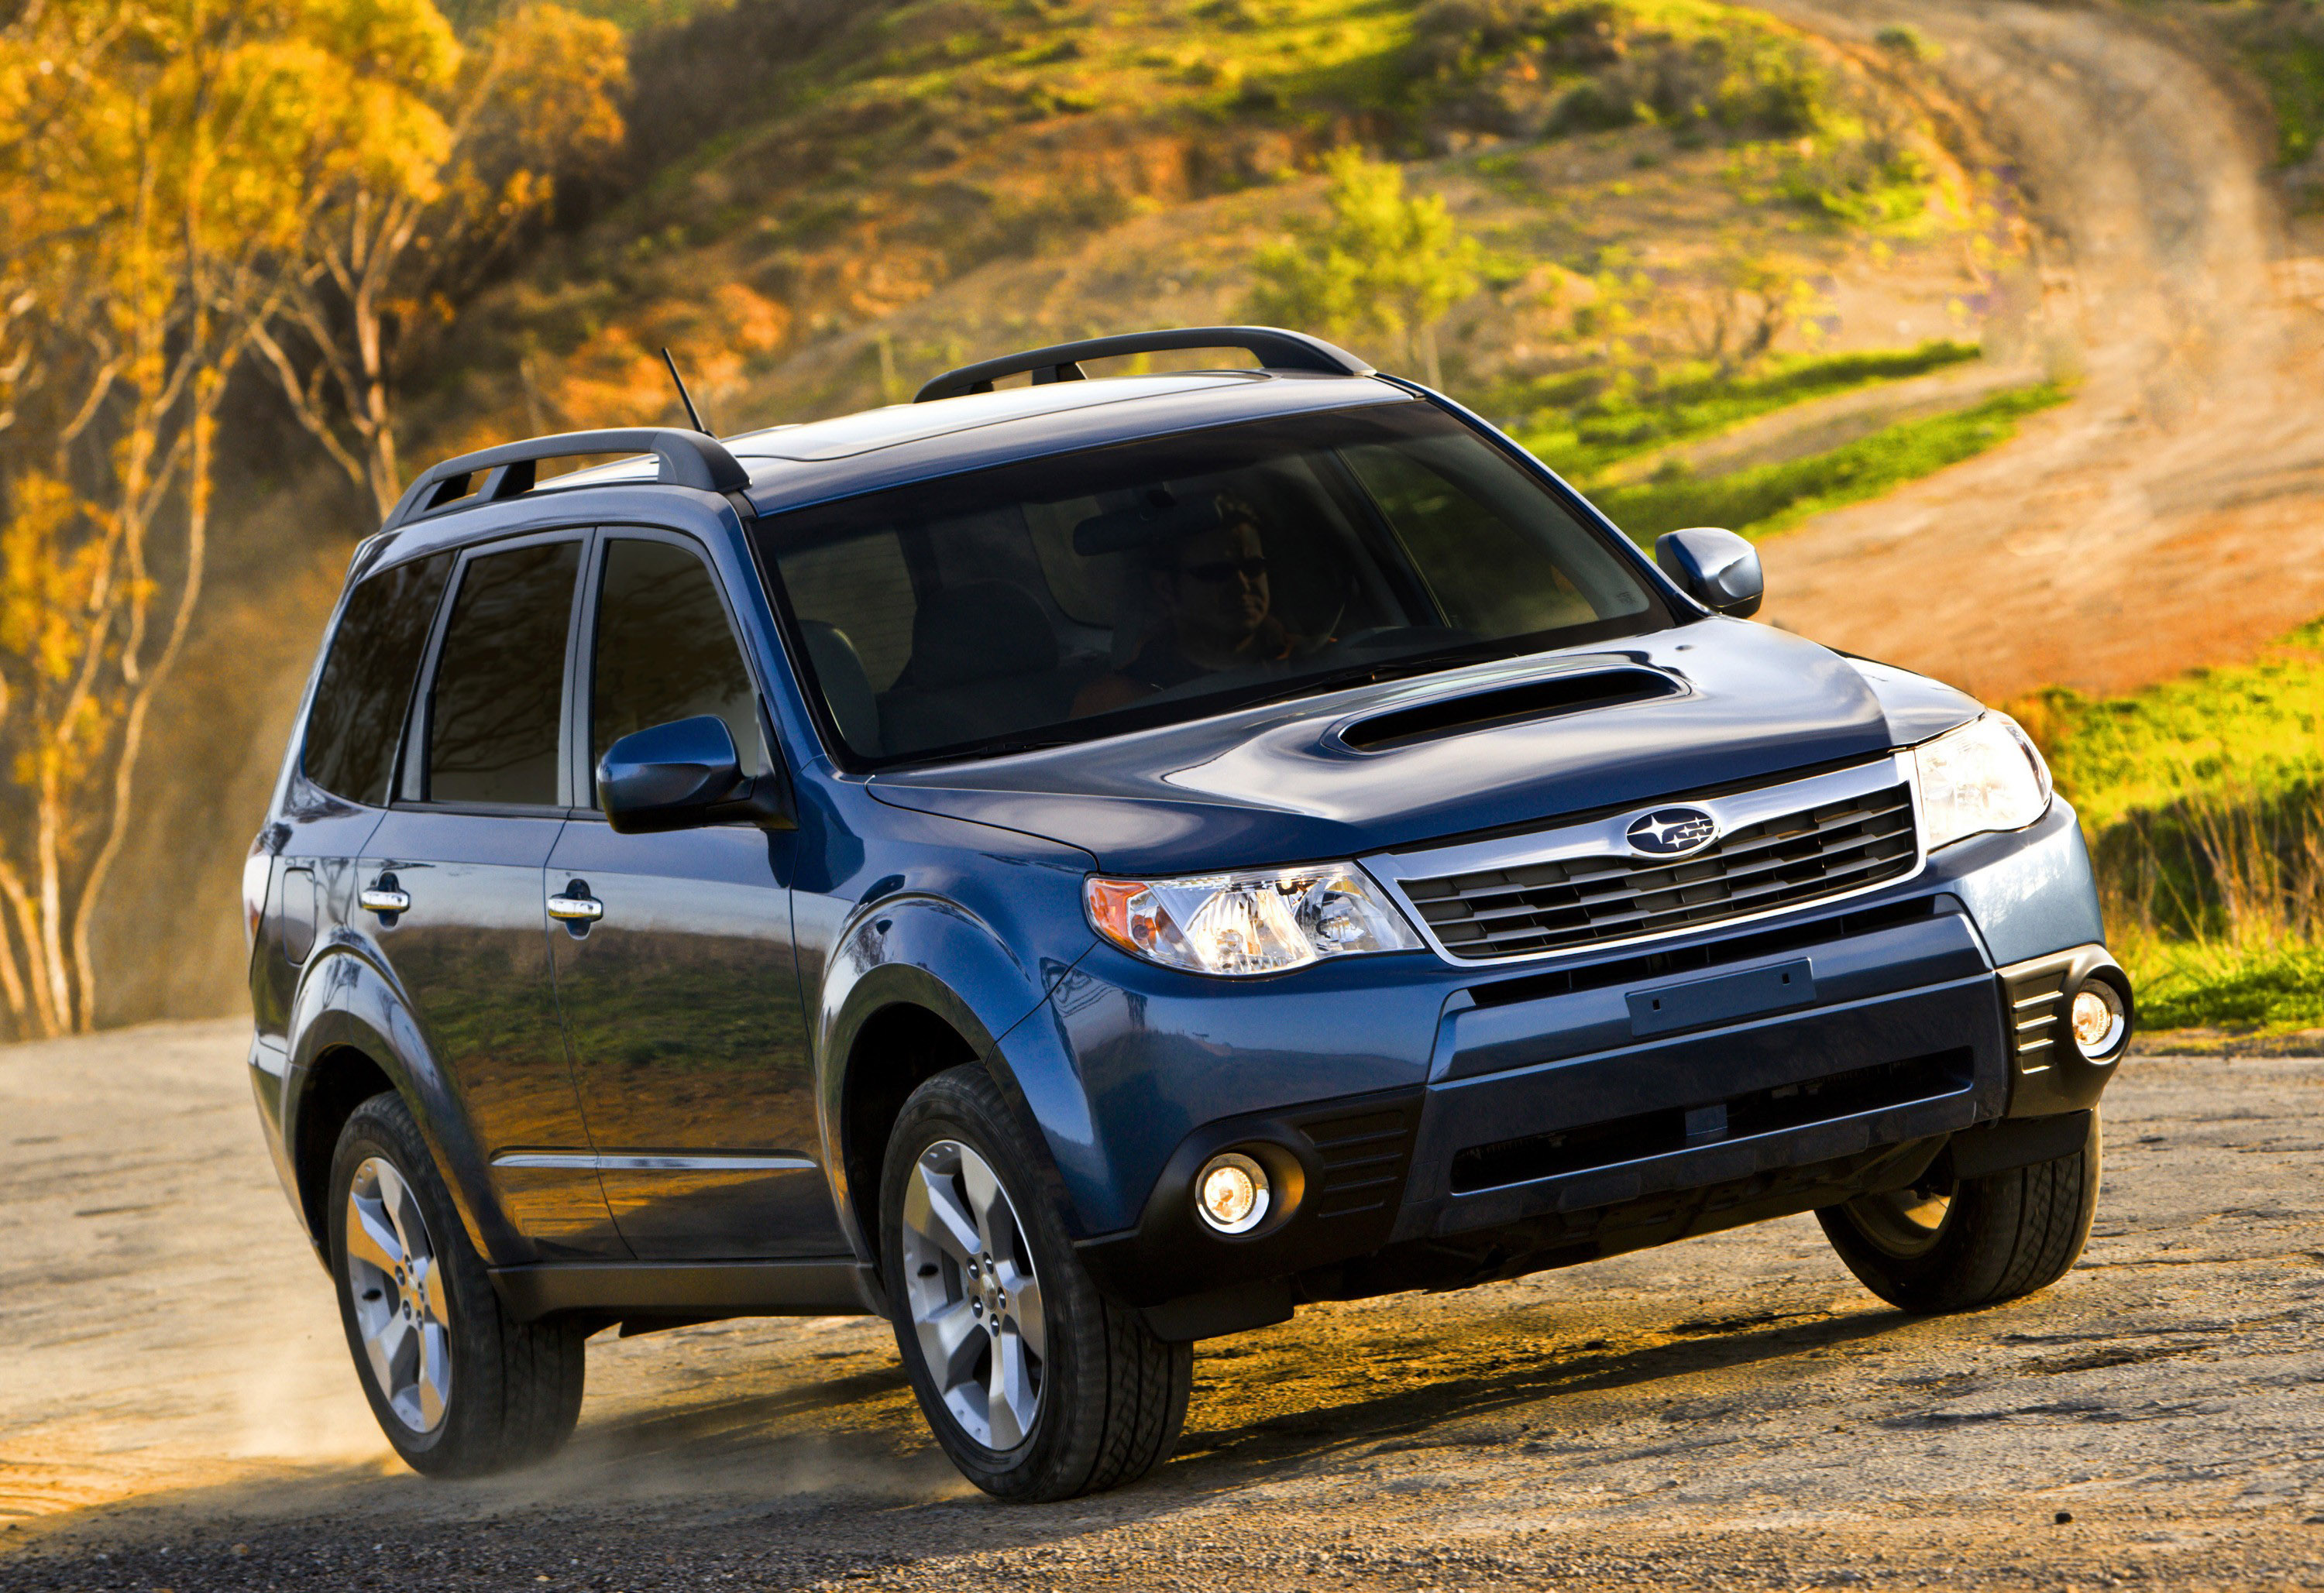 2010 Subaru Forester 2 5xt Picture 30176